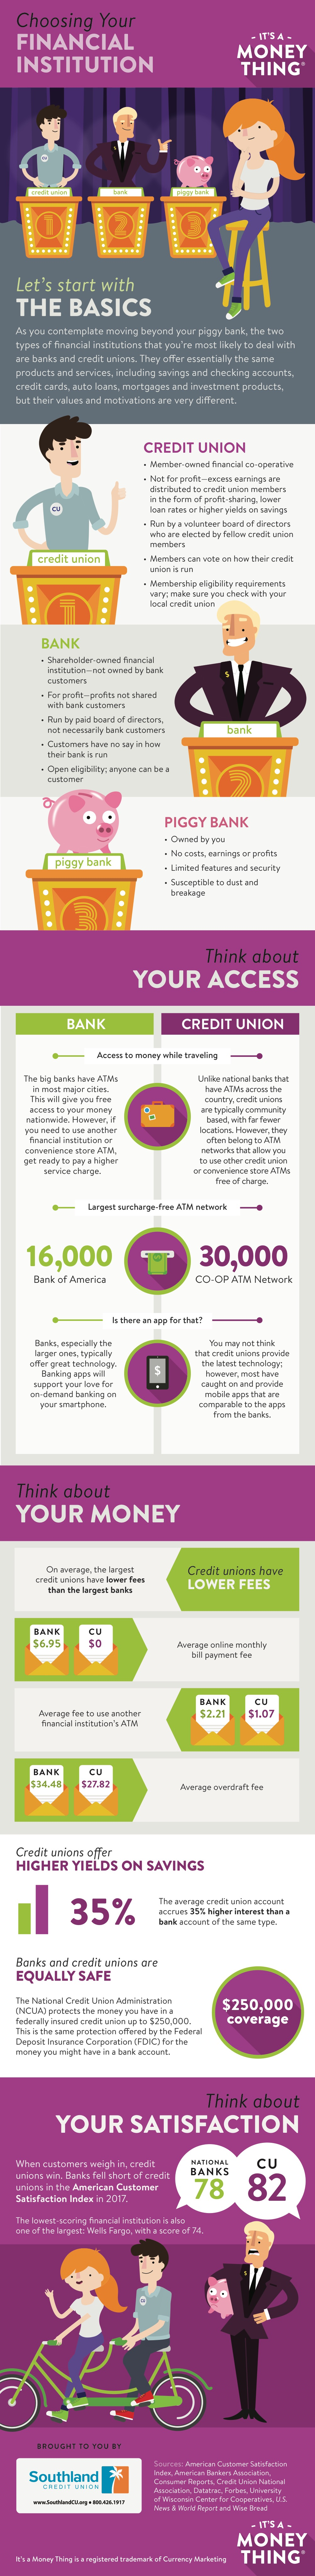 financial institution infographic